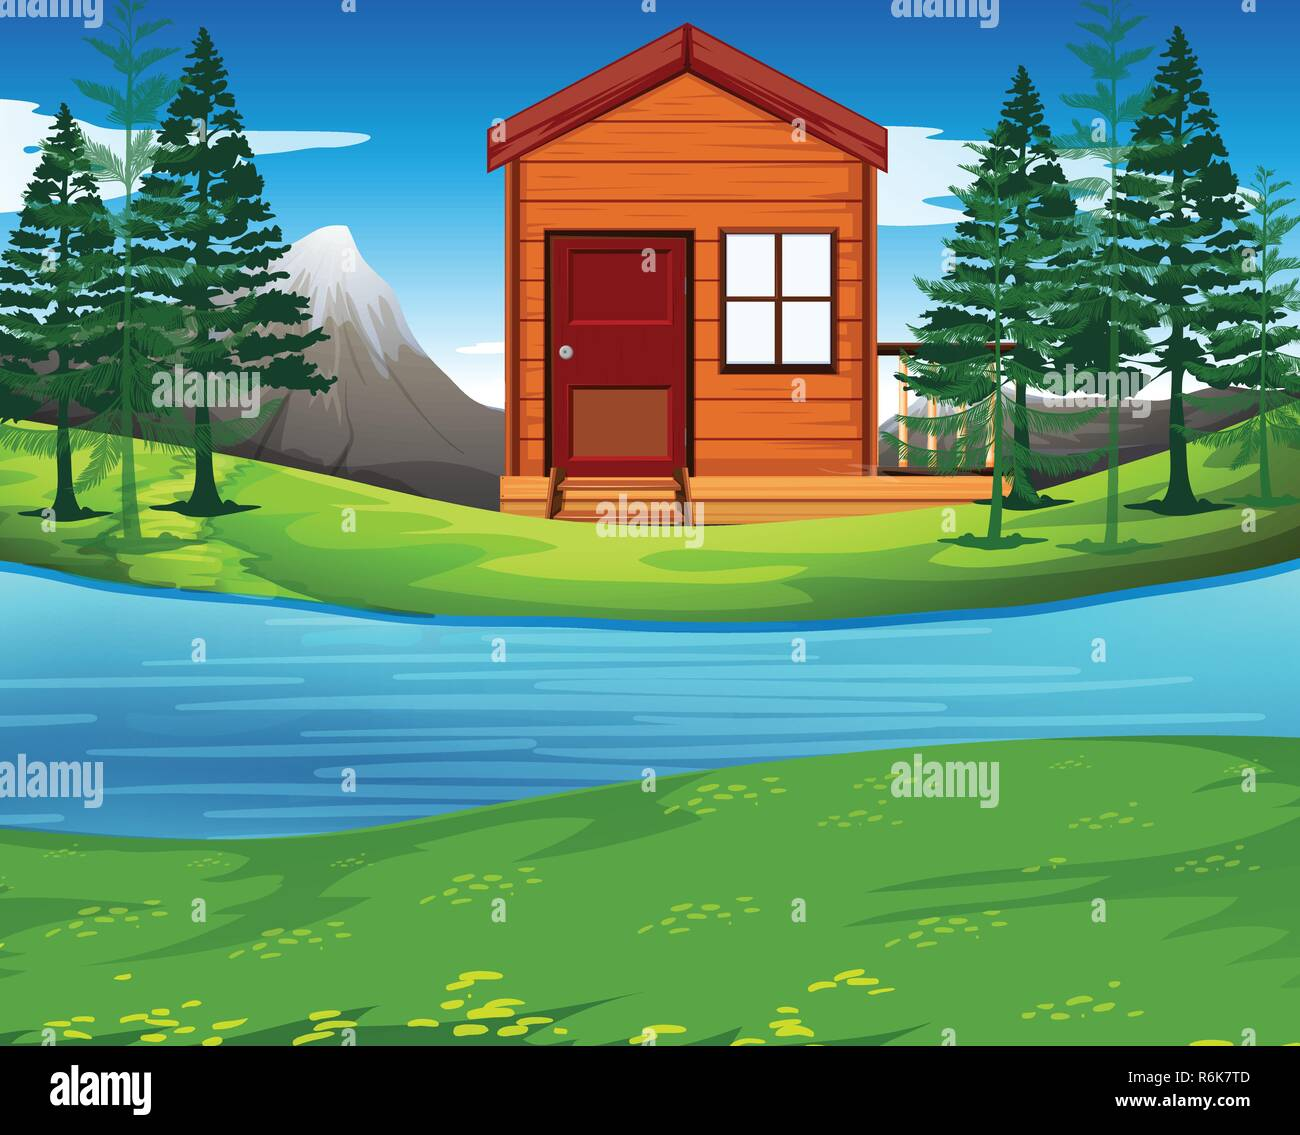 Cabin in the nature illustration - Stock Vector